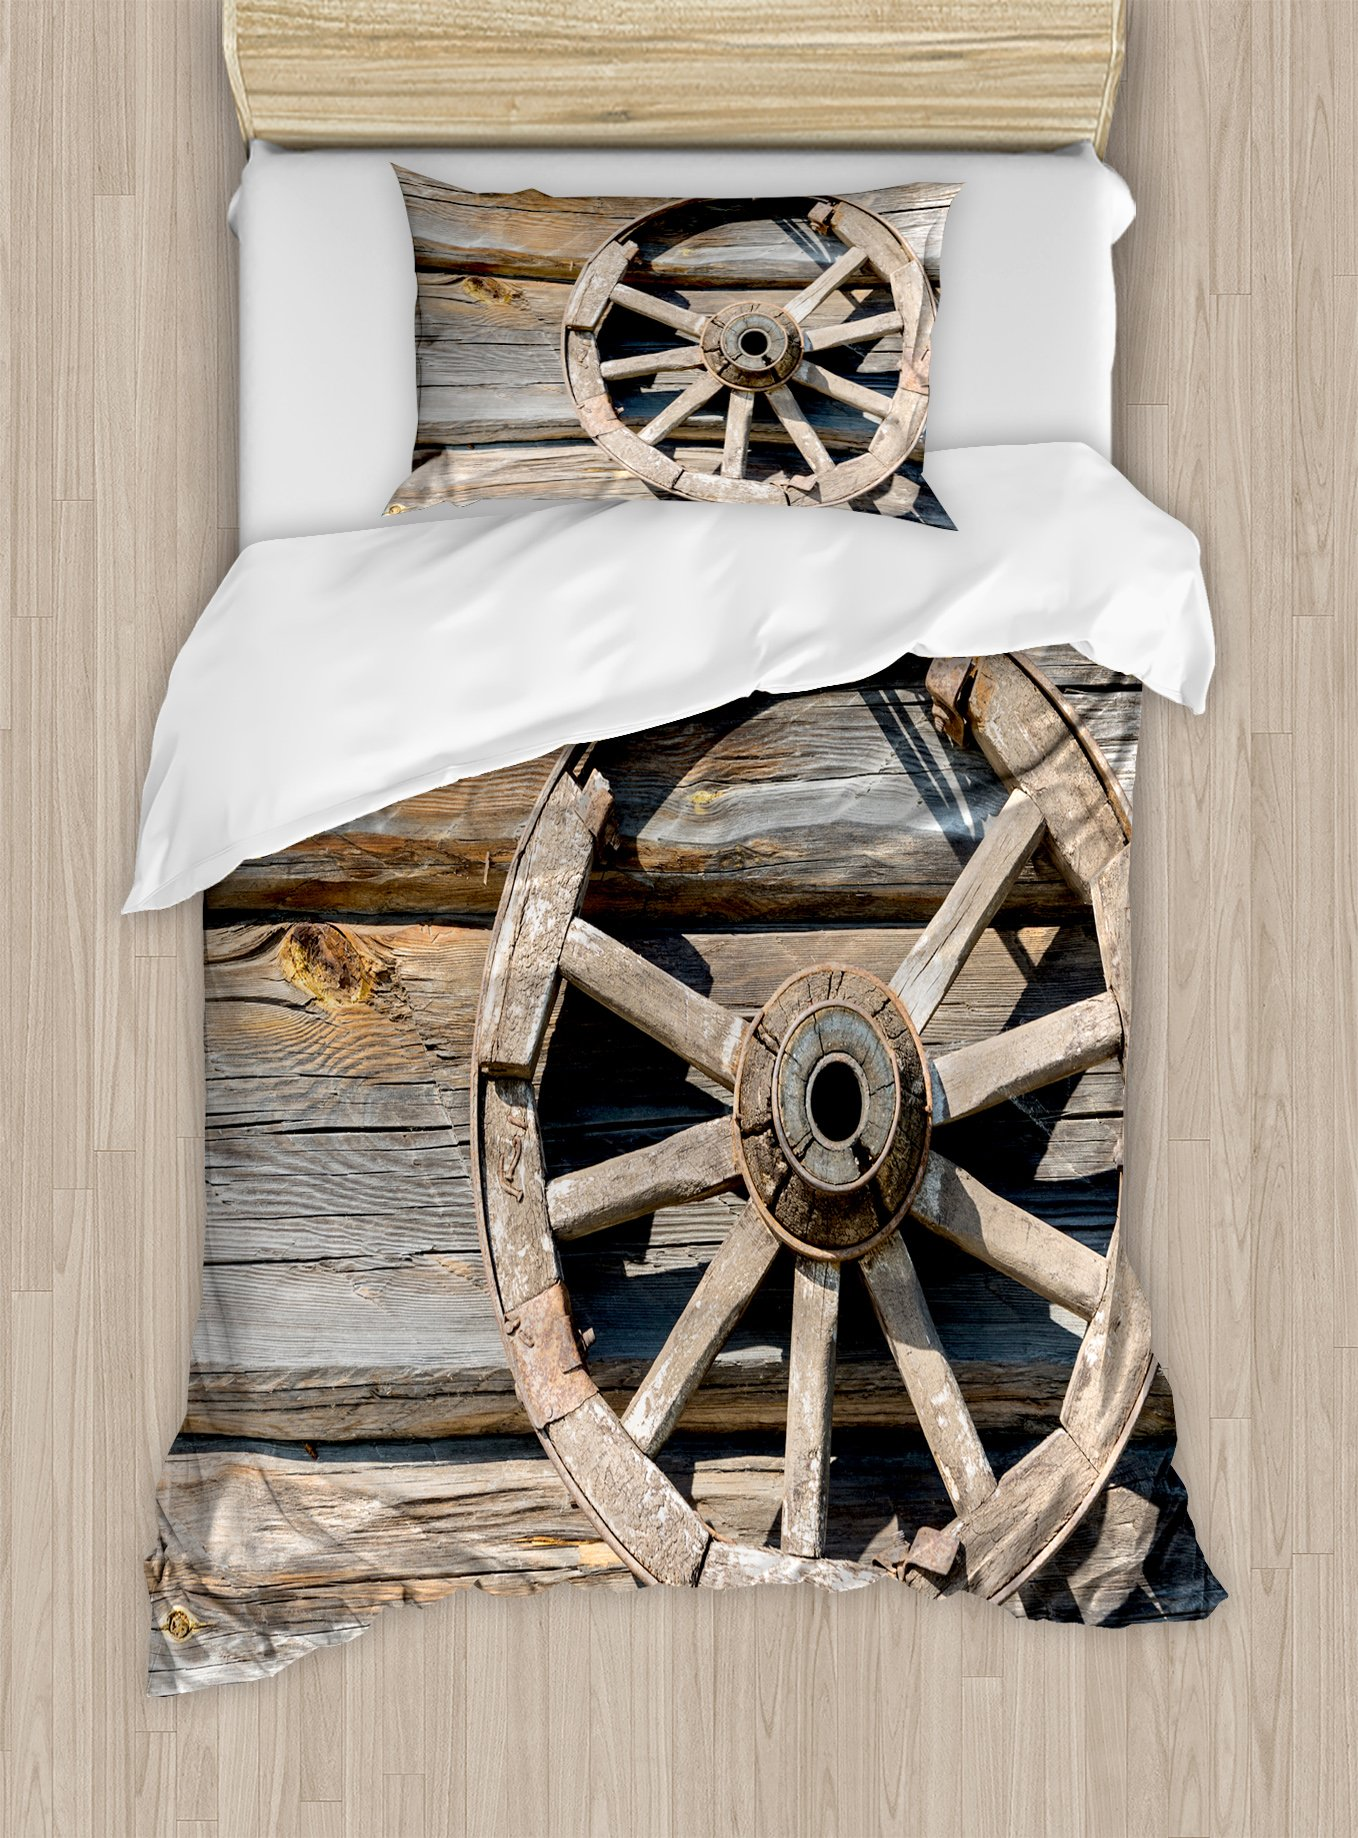 Ambesonne Barn Wood Wagon Wheel Duvet Cover Set Twin Size, Old Log Wall with Cartwheel Telega Rural Countryside Themed Image, Decorative 2 Piece Bedding Set with 1 Pillow Sham, Umber Beige